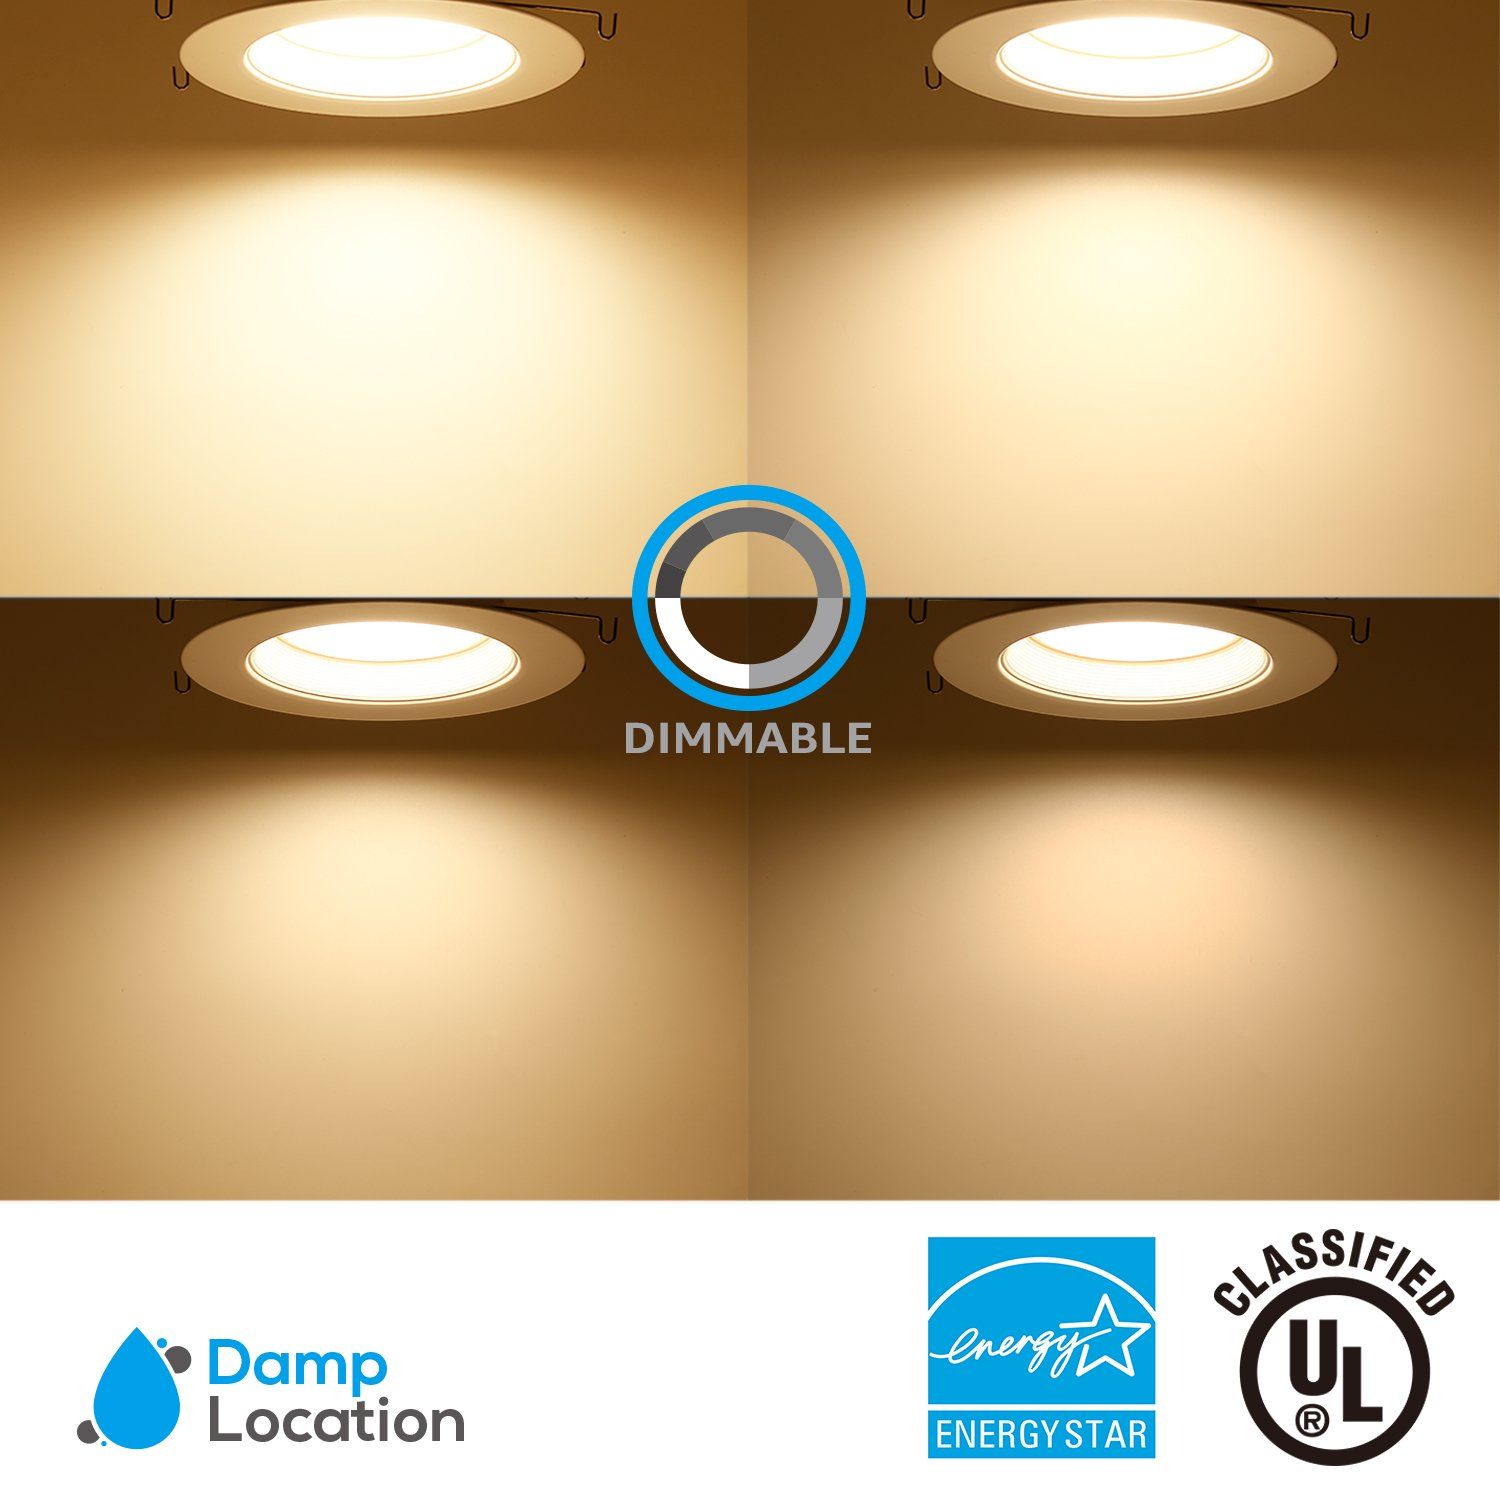 2700K Soft White LUTRON Caseta Dimmer Compatible TORCHSTAR 6inch Dimmable LED Retrofit Recessed Downlight LED Ceiling Light 120W Equiv. ENERGY STAR /& UL Listed 18W